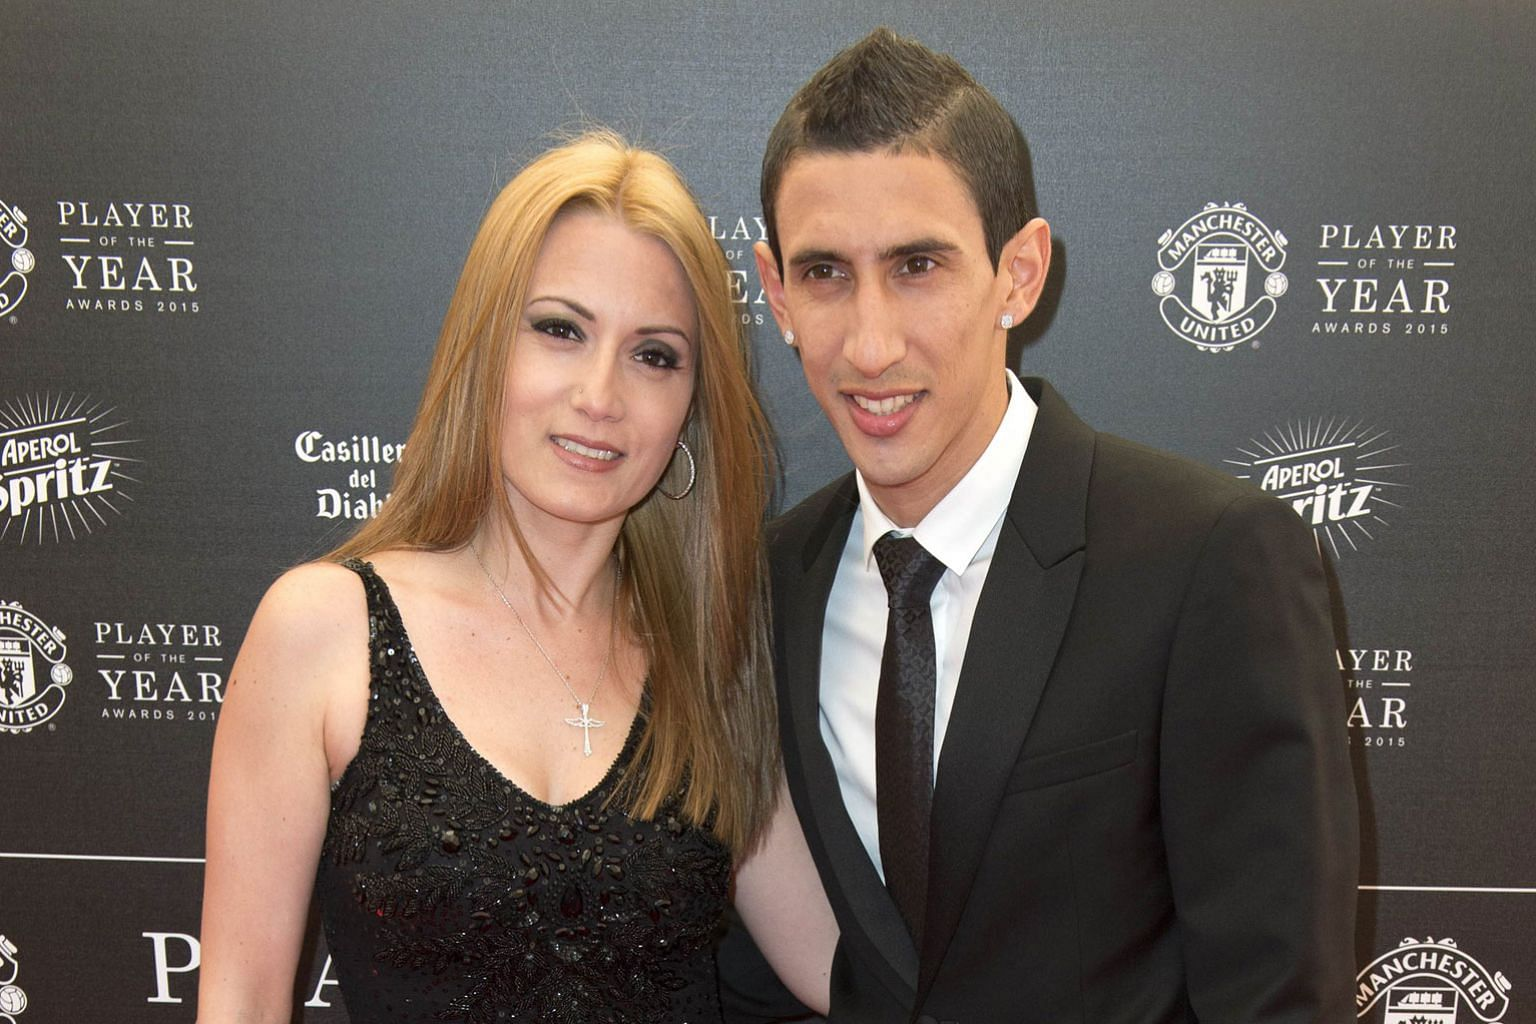 Argentina midfielder Angel di Maria and his wife Jorgelina posing on the red carpet as they arrived for United's Player of the Year Awards on May 19. Old Trafford fans have barely seen him at his best but after a single season, he is off to PSG to ch